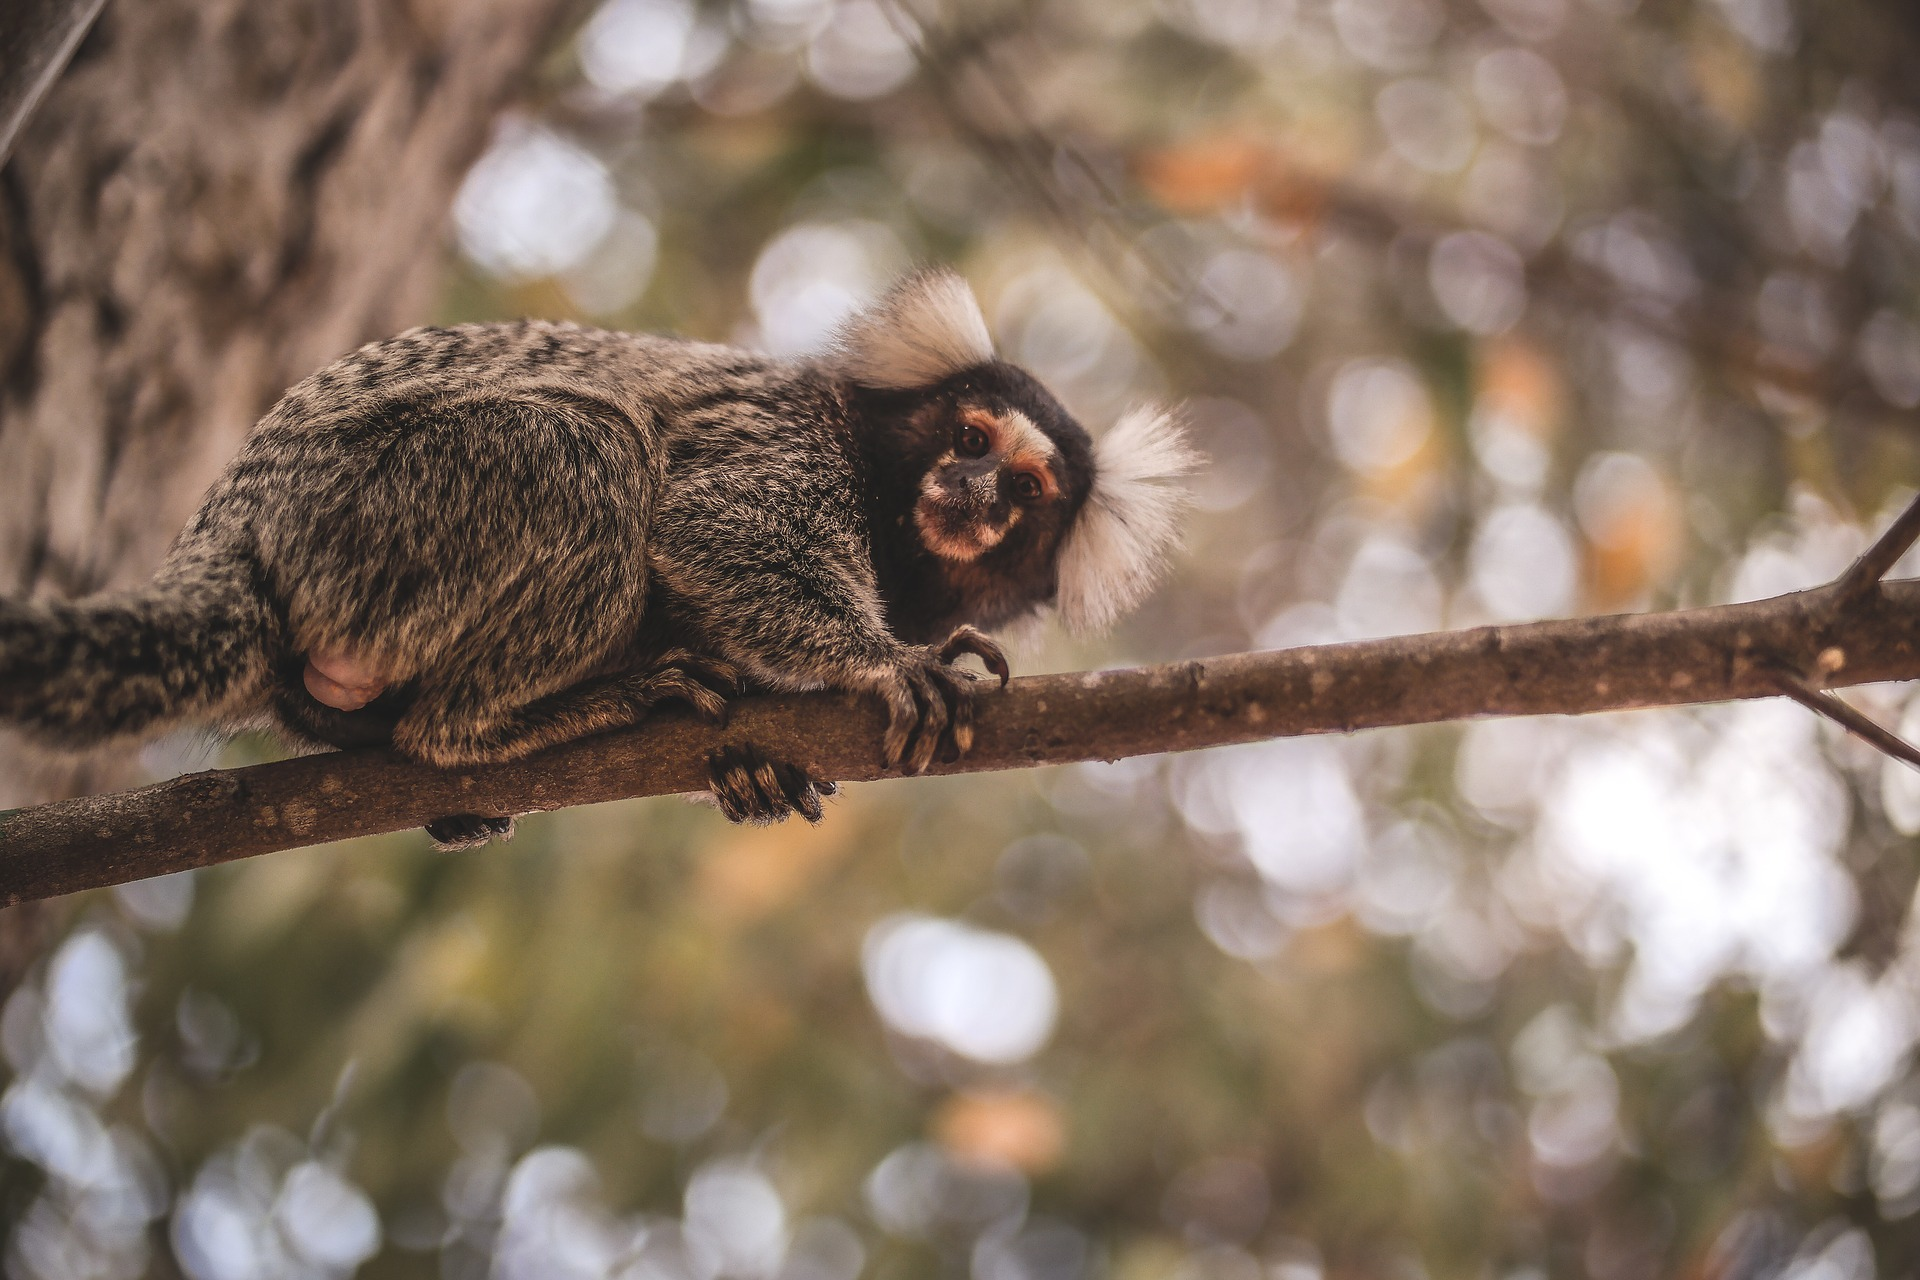 Marmoset (monkey) in Brazil